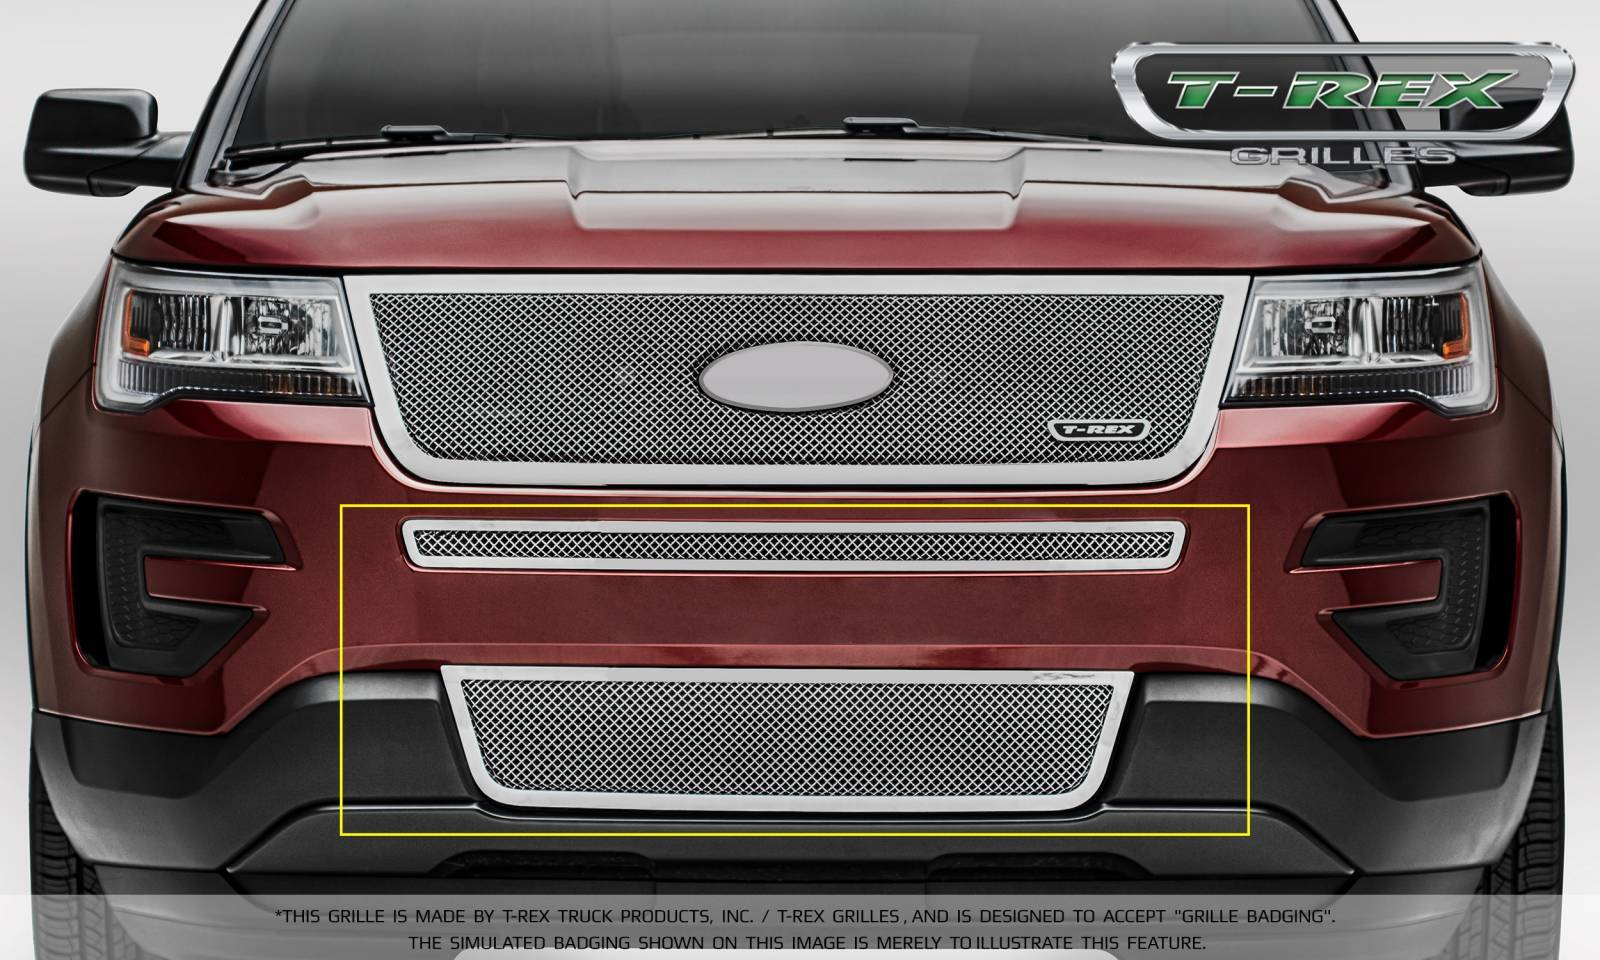 T-REX Grilles - Ford Explorer - Upper Class - 2 Piece Overlay - Bumper Grille - Polished Stainless Steel Formed Mesh - Pt # 55664